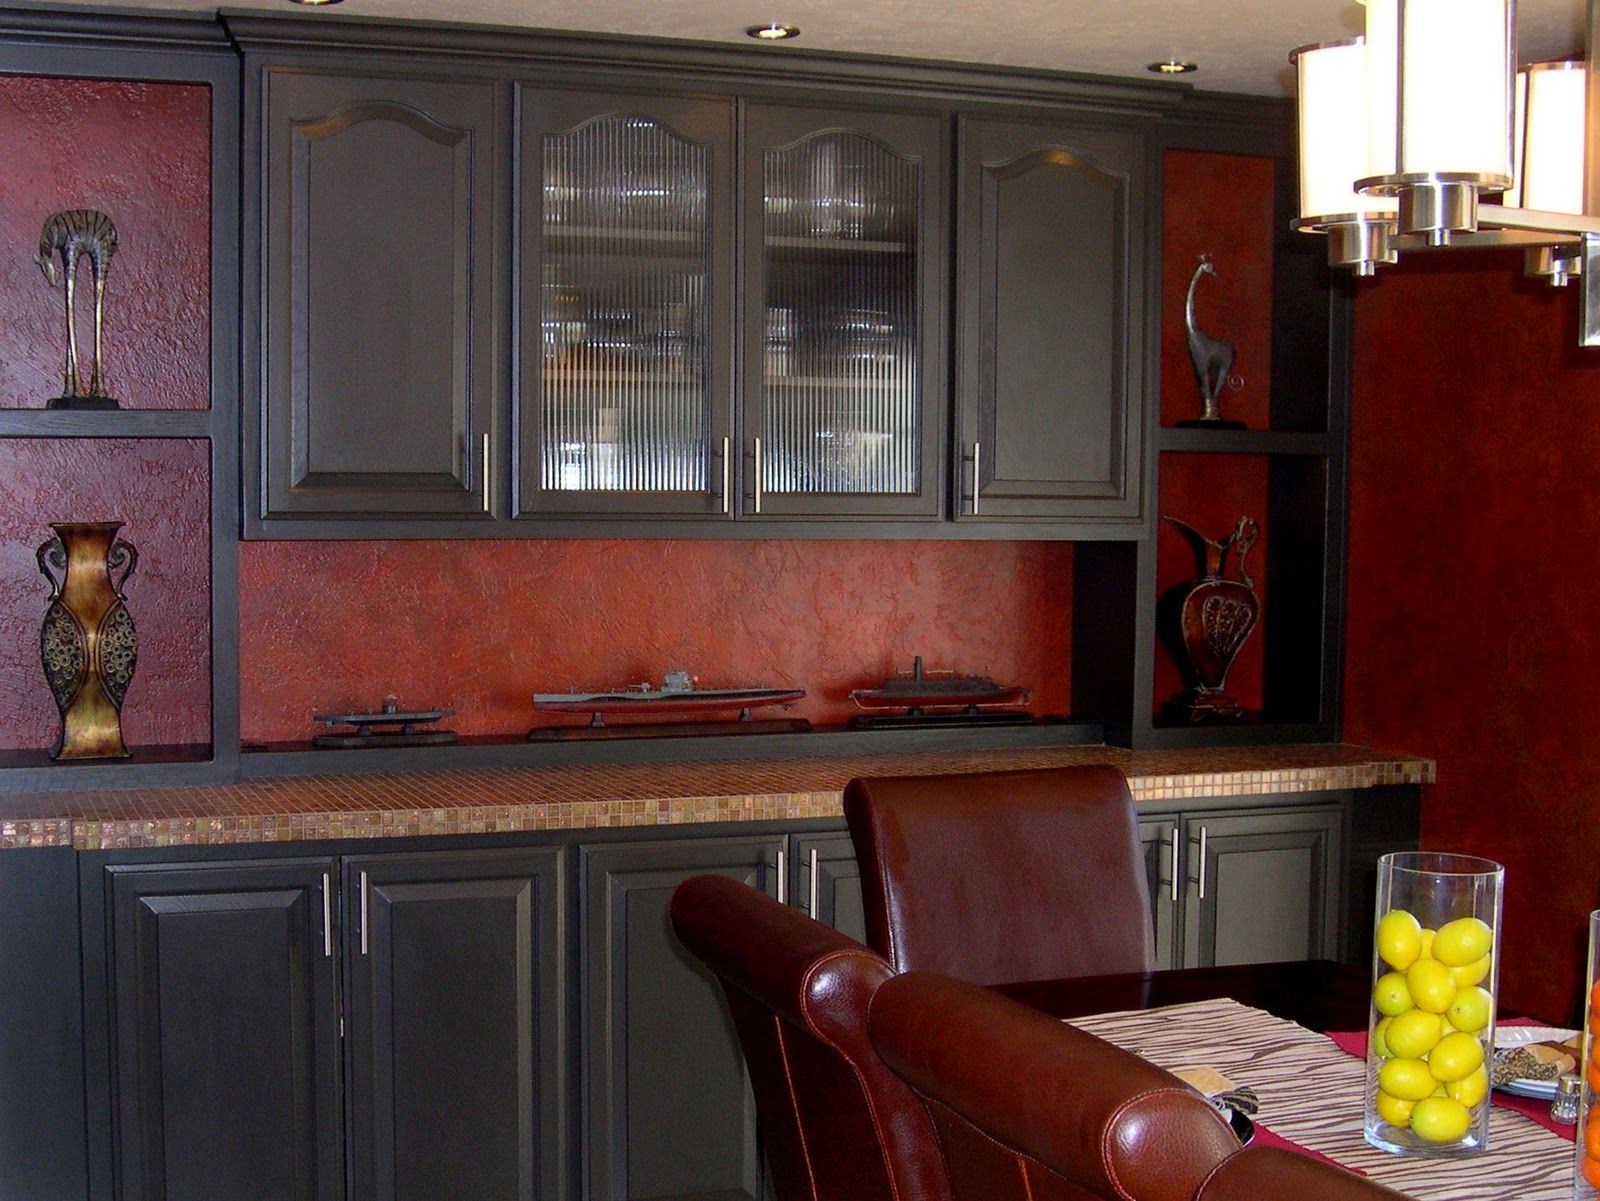 Pin By Natty Barclay On Kitchen Redecorating Ideas Red Walls Black Cabinets